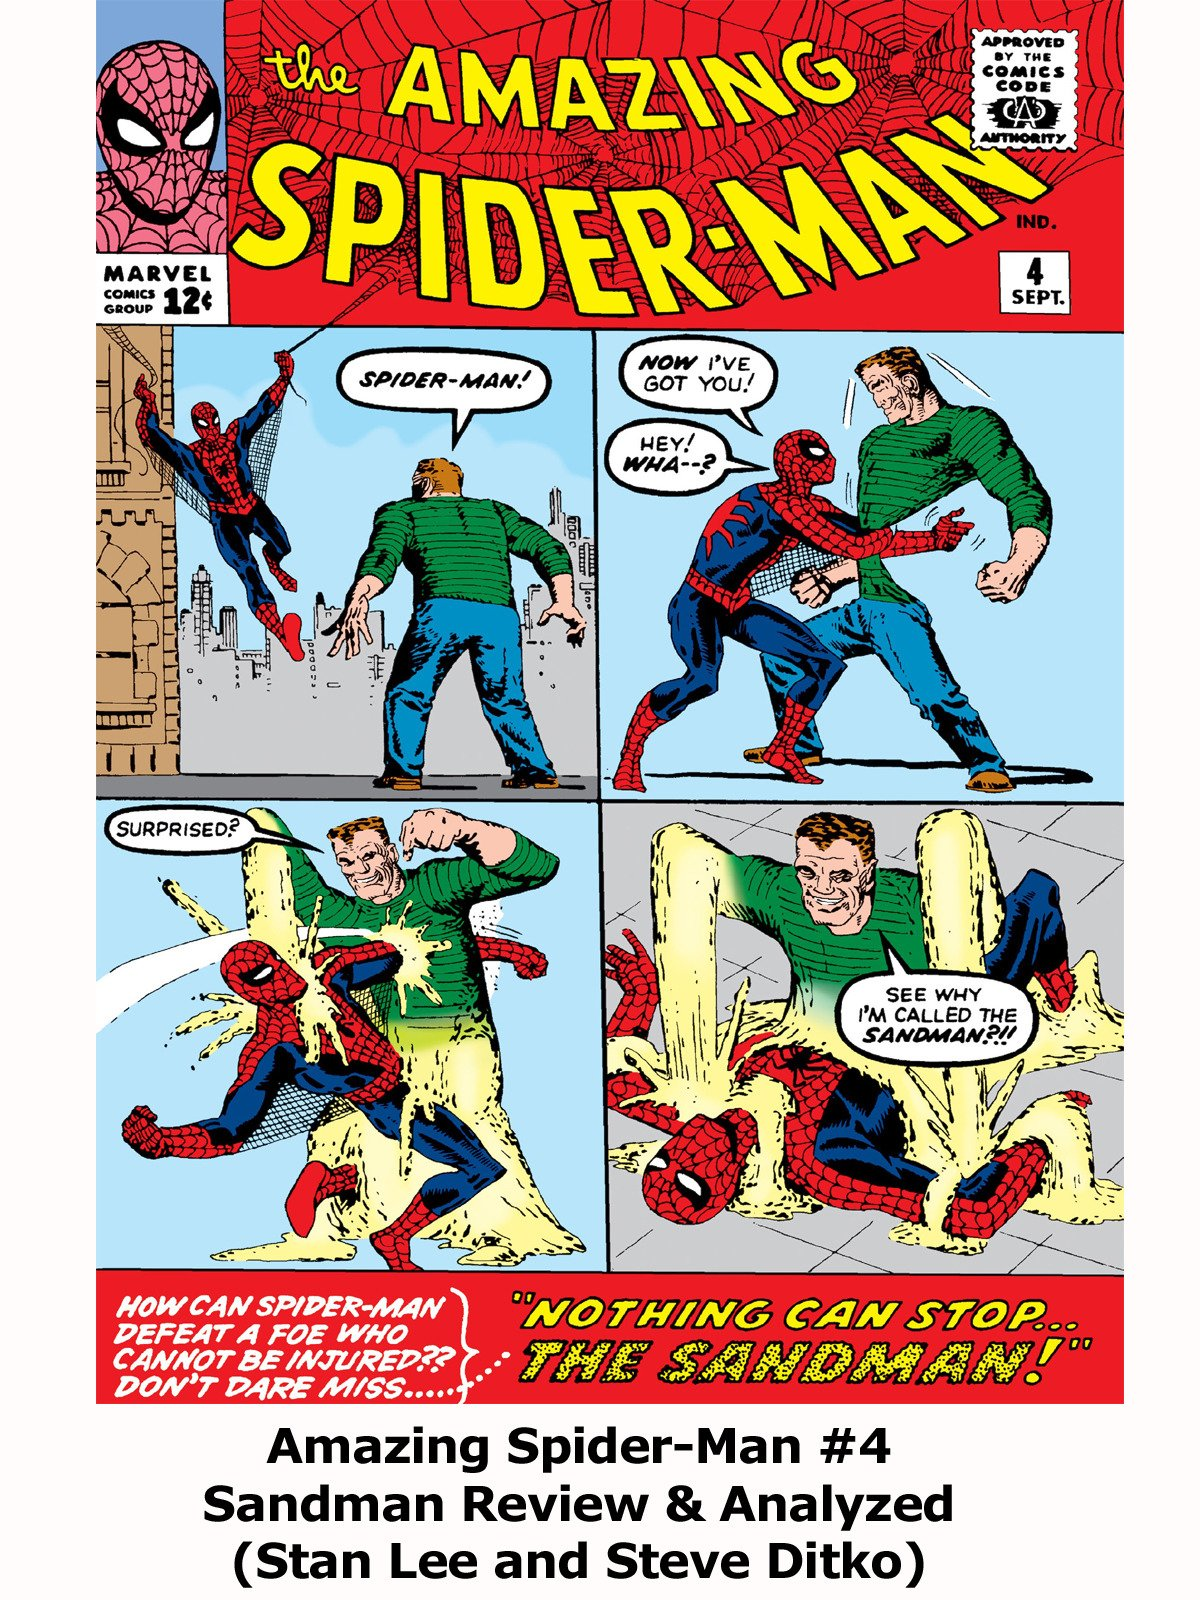 Review: Amazing Spider-Man #4 Sandman Review & Analyzed (Stan Lee and Steve Ditko)